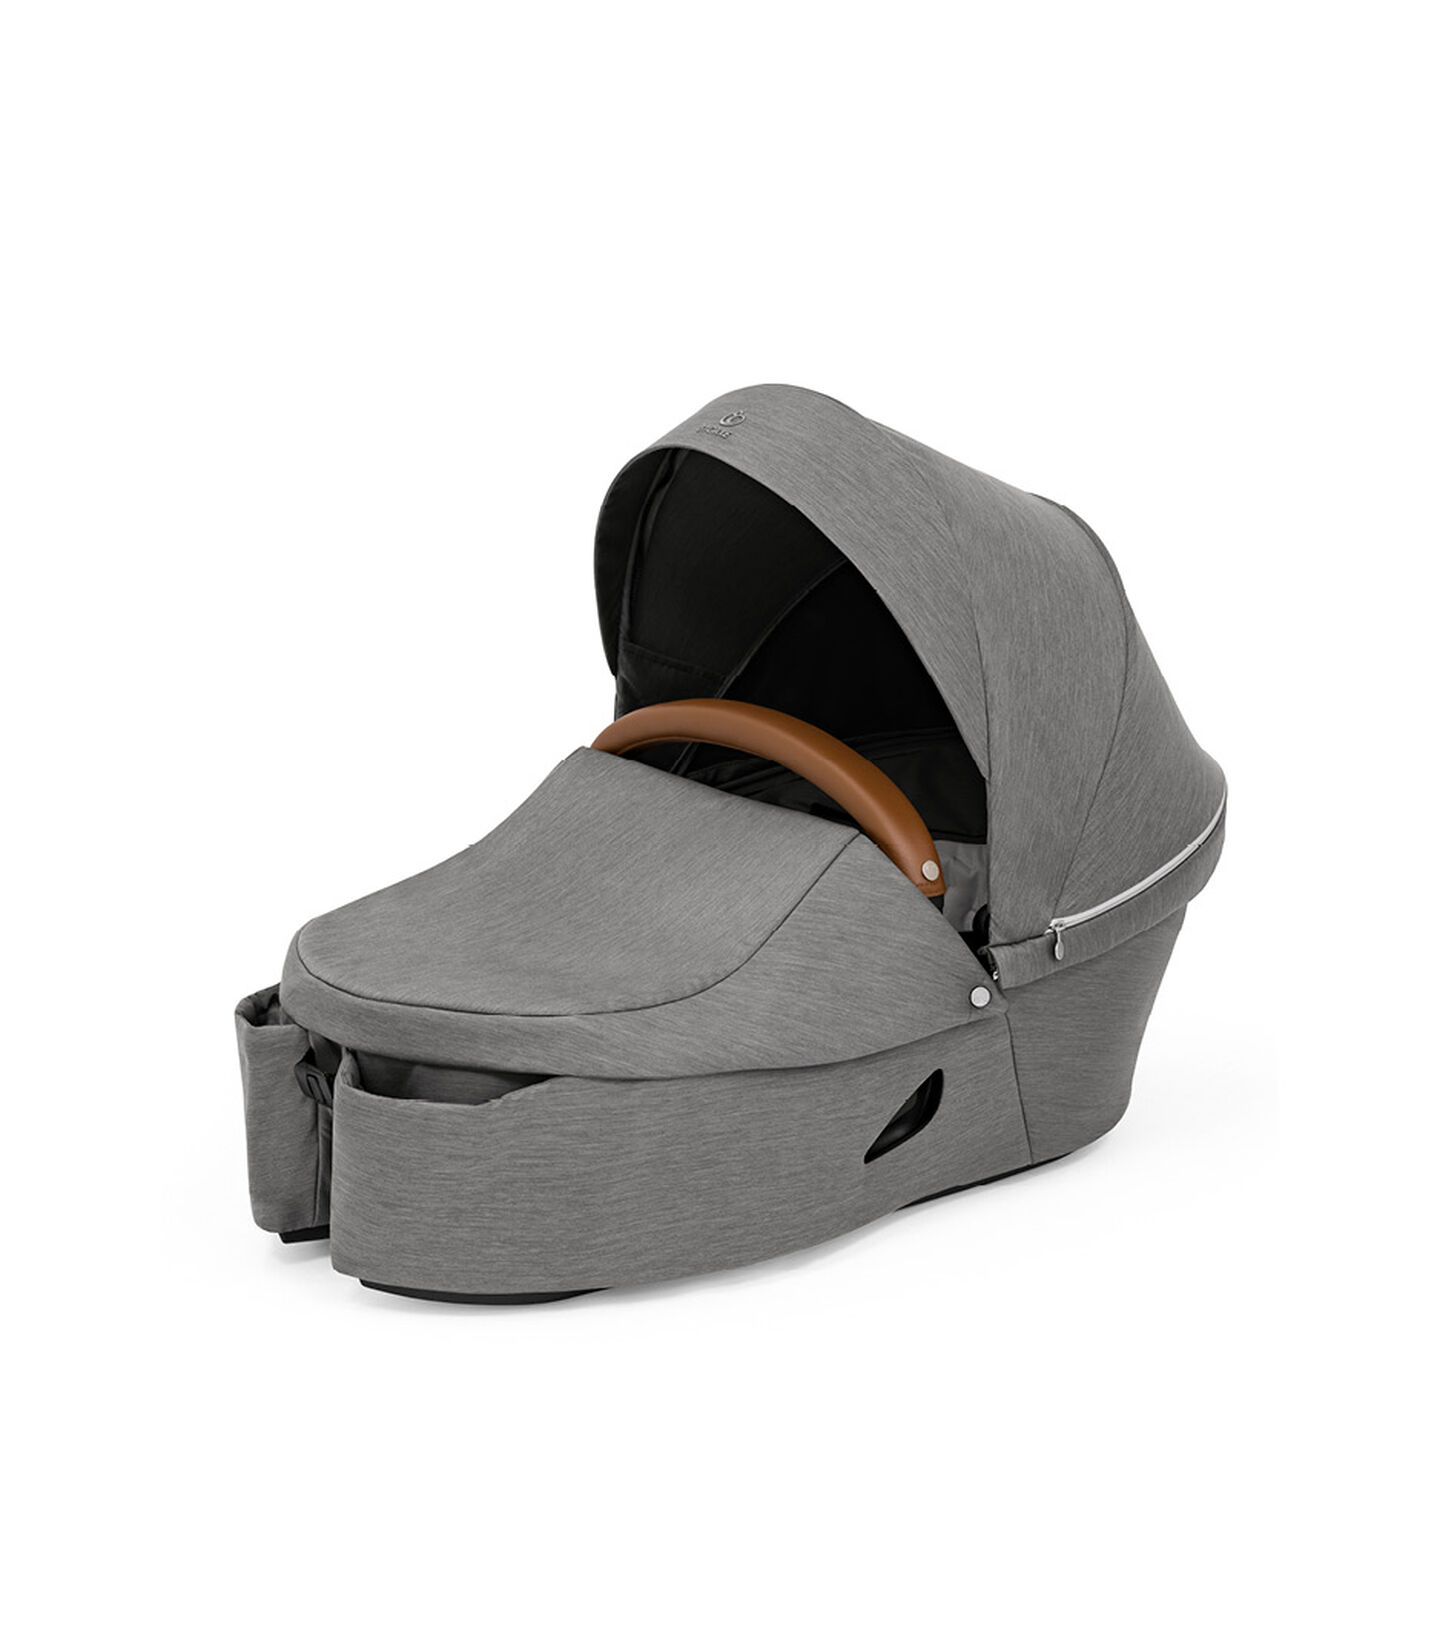 Stokke® Xplory® X Carry Cot Modern Grey, Серый модерн, mainview view 2